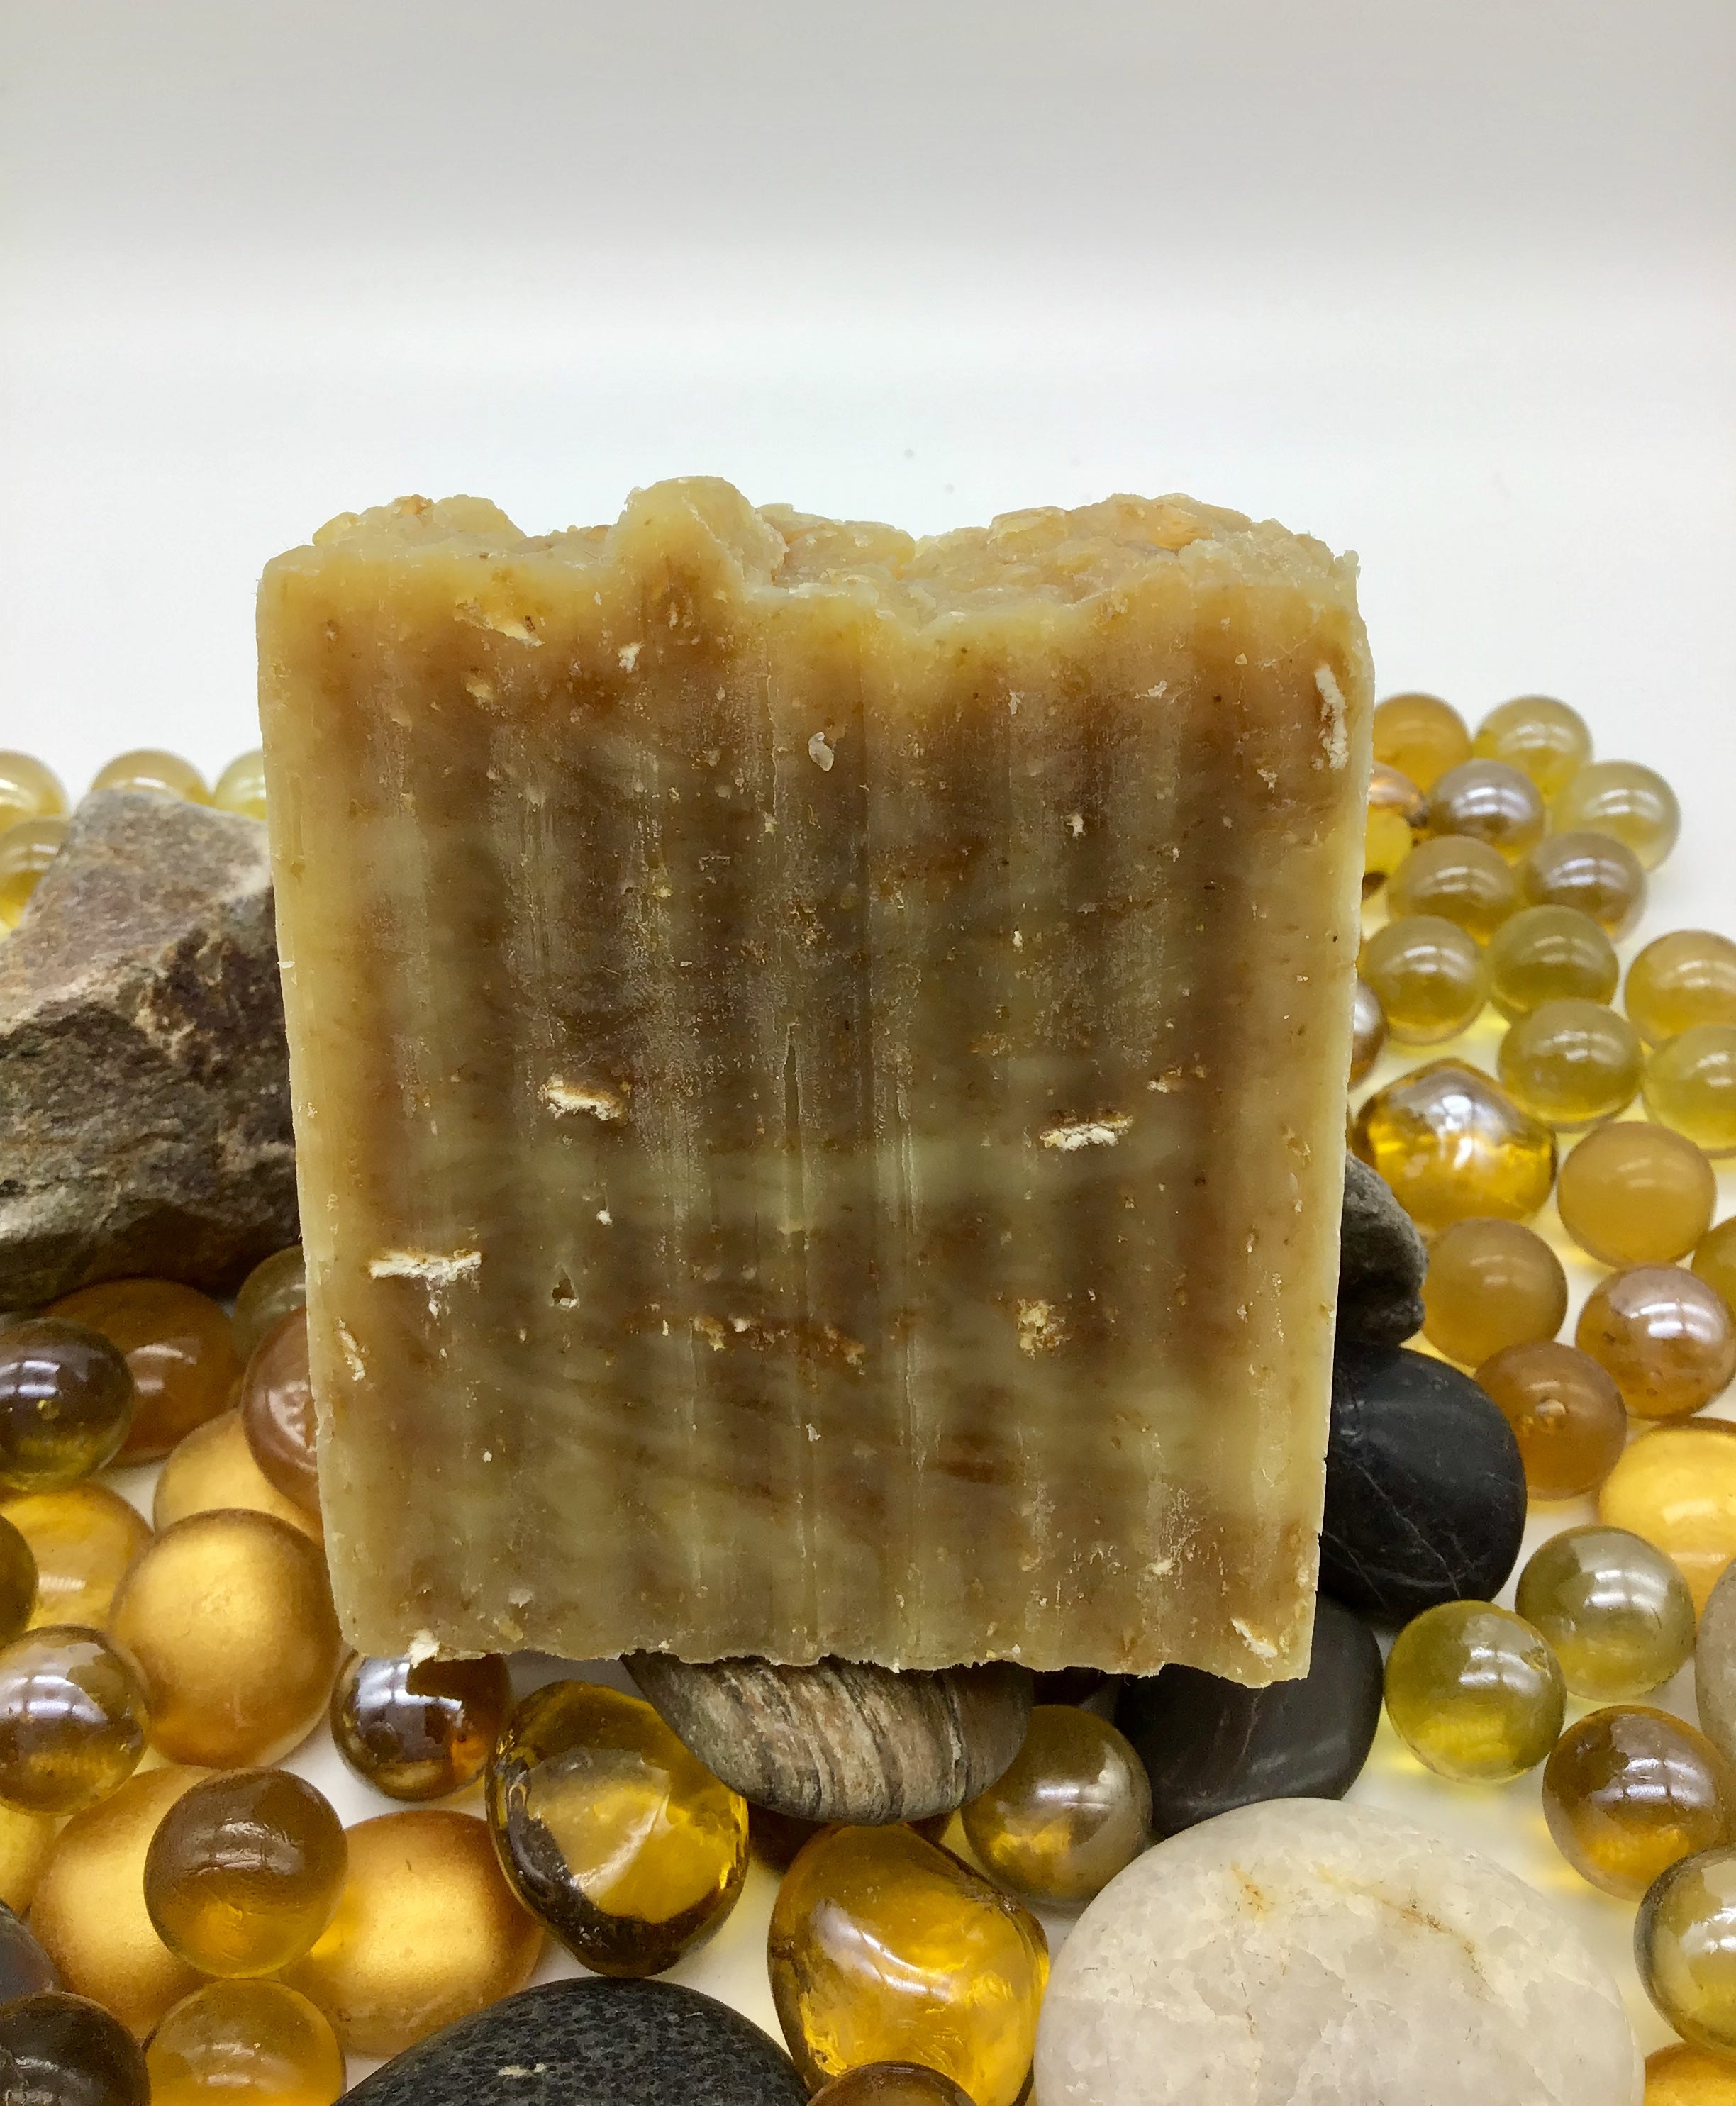 Honey and Oats Artisan Soap